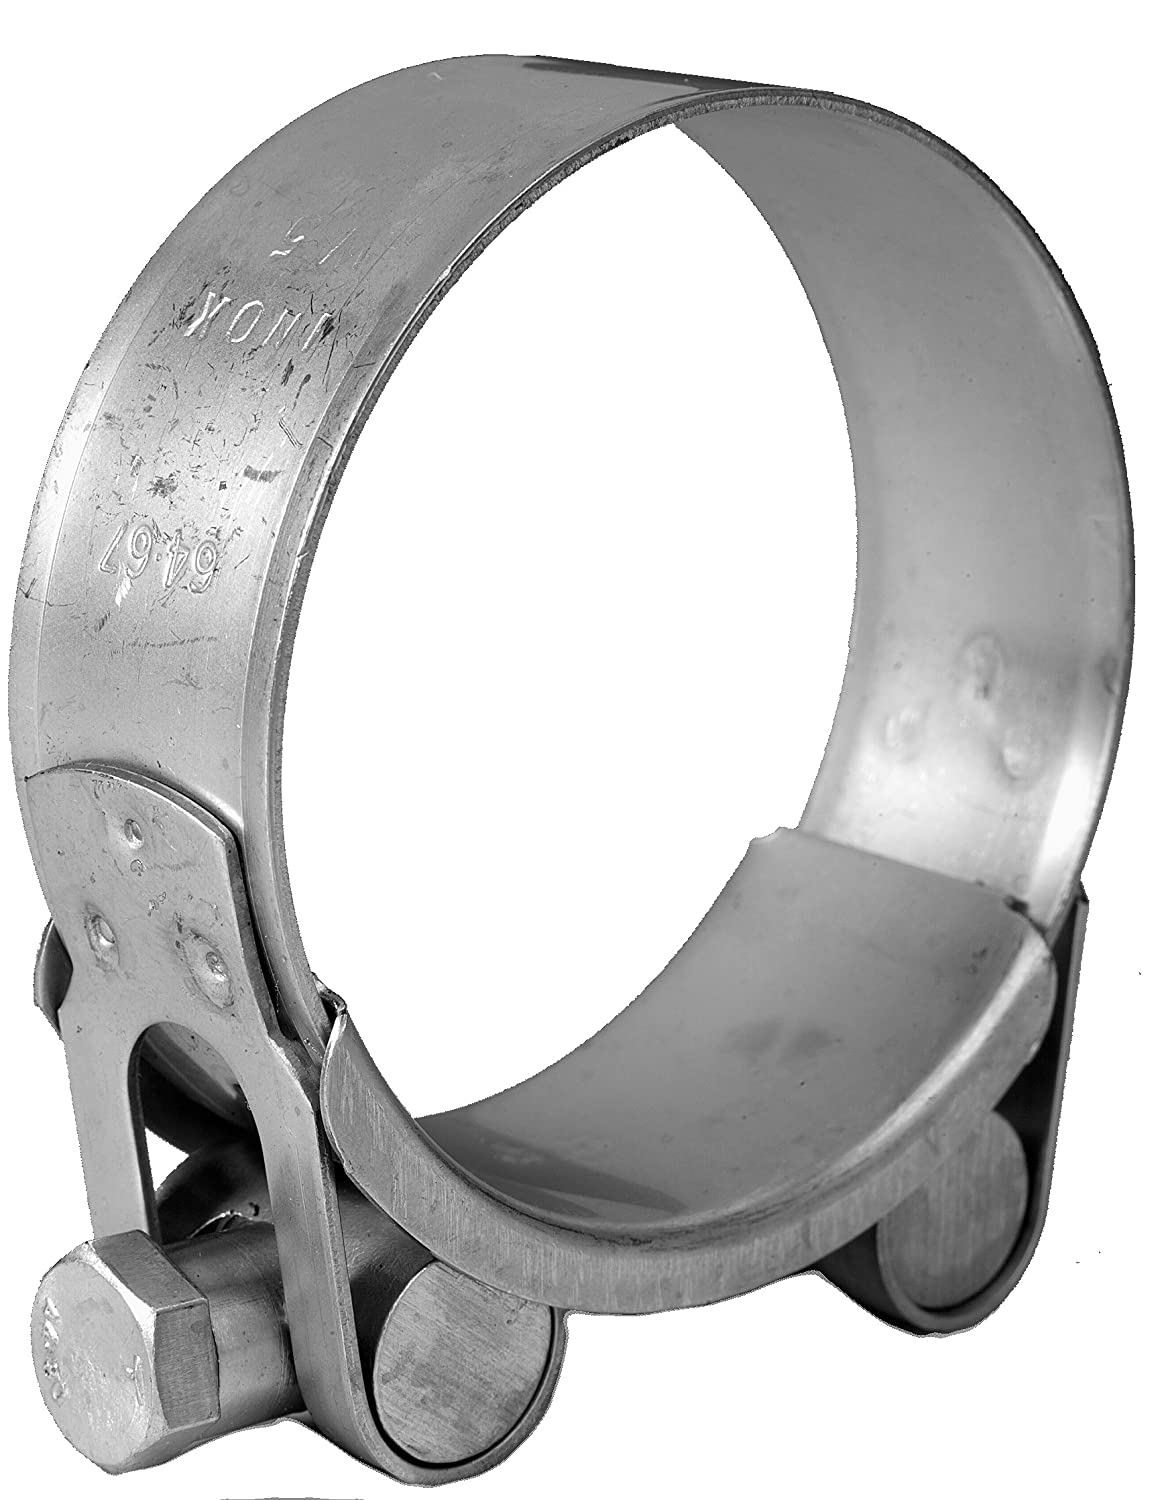 Jubilee JSC063MSP Super Clamp M/S 60 - 63mm (Pack of 2) L Robinson & Co (Gillingham) Limited